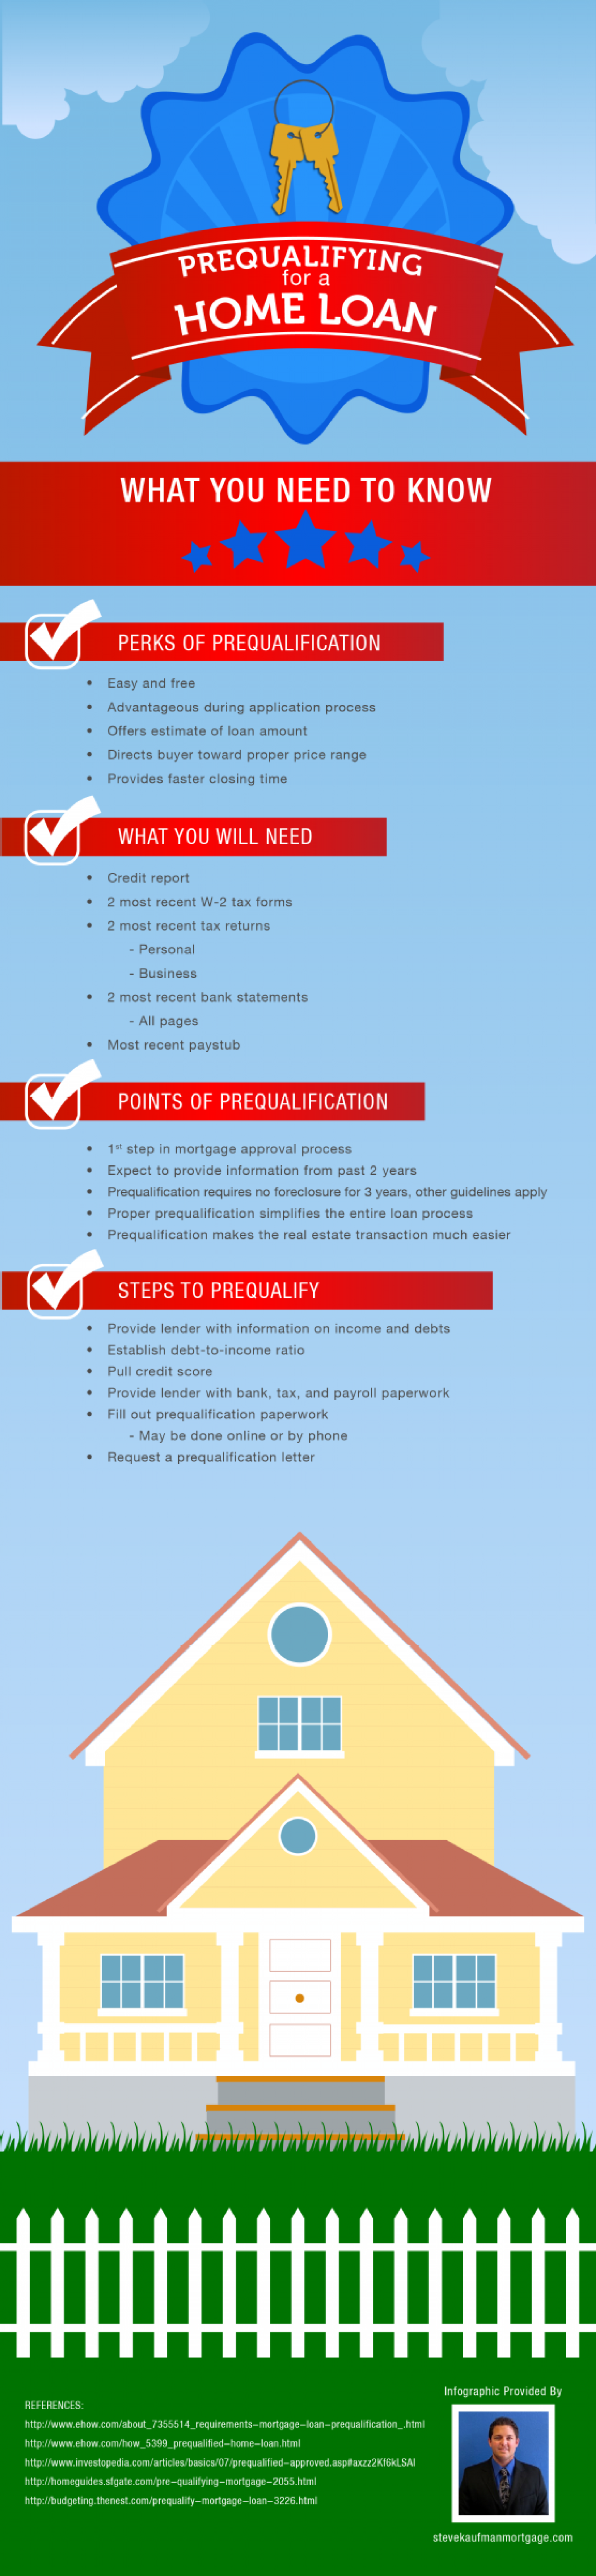 Prequalifying for a Home a Loan: What You Need to Know Infographic